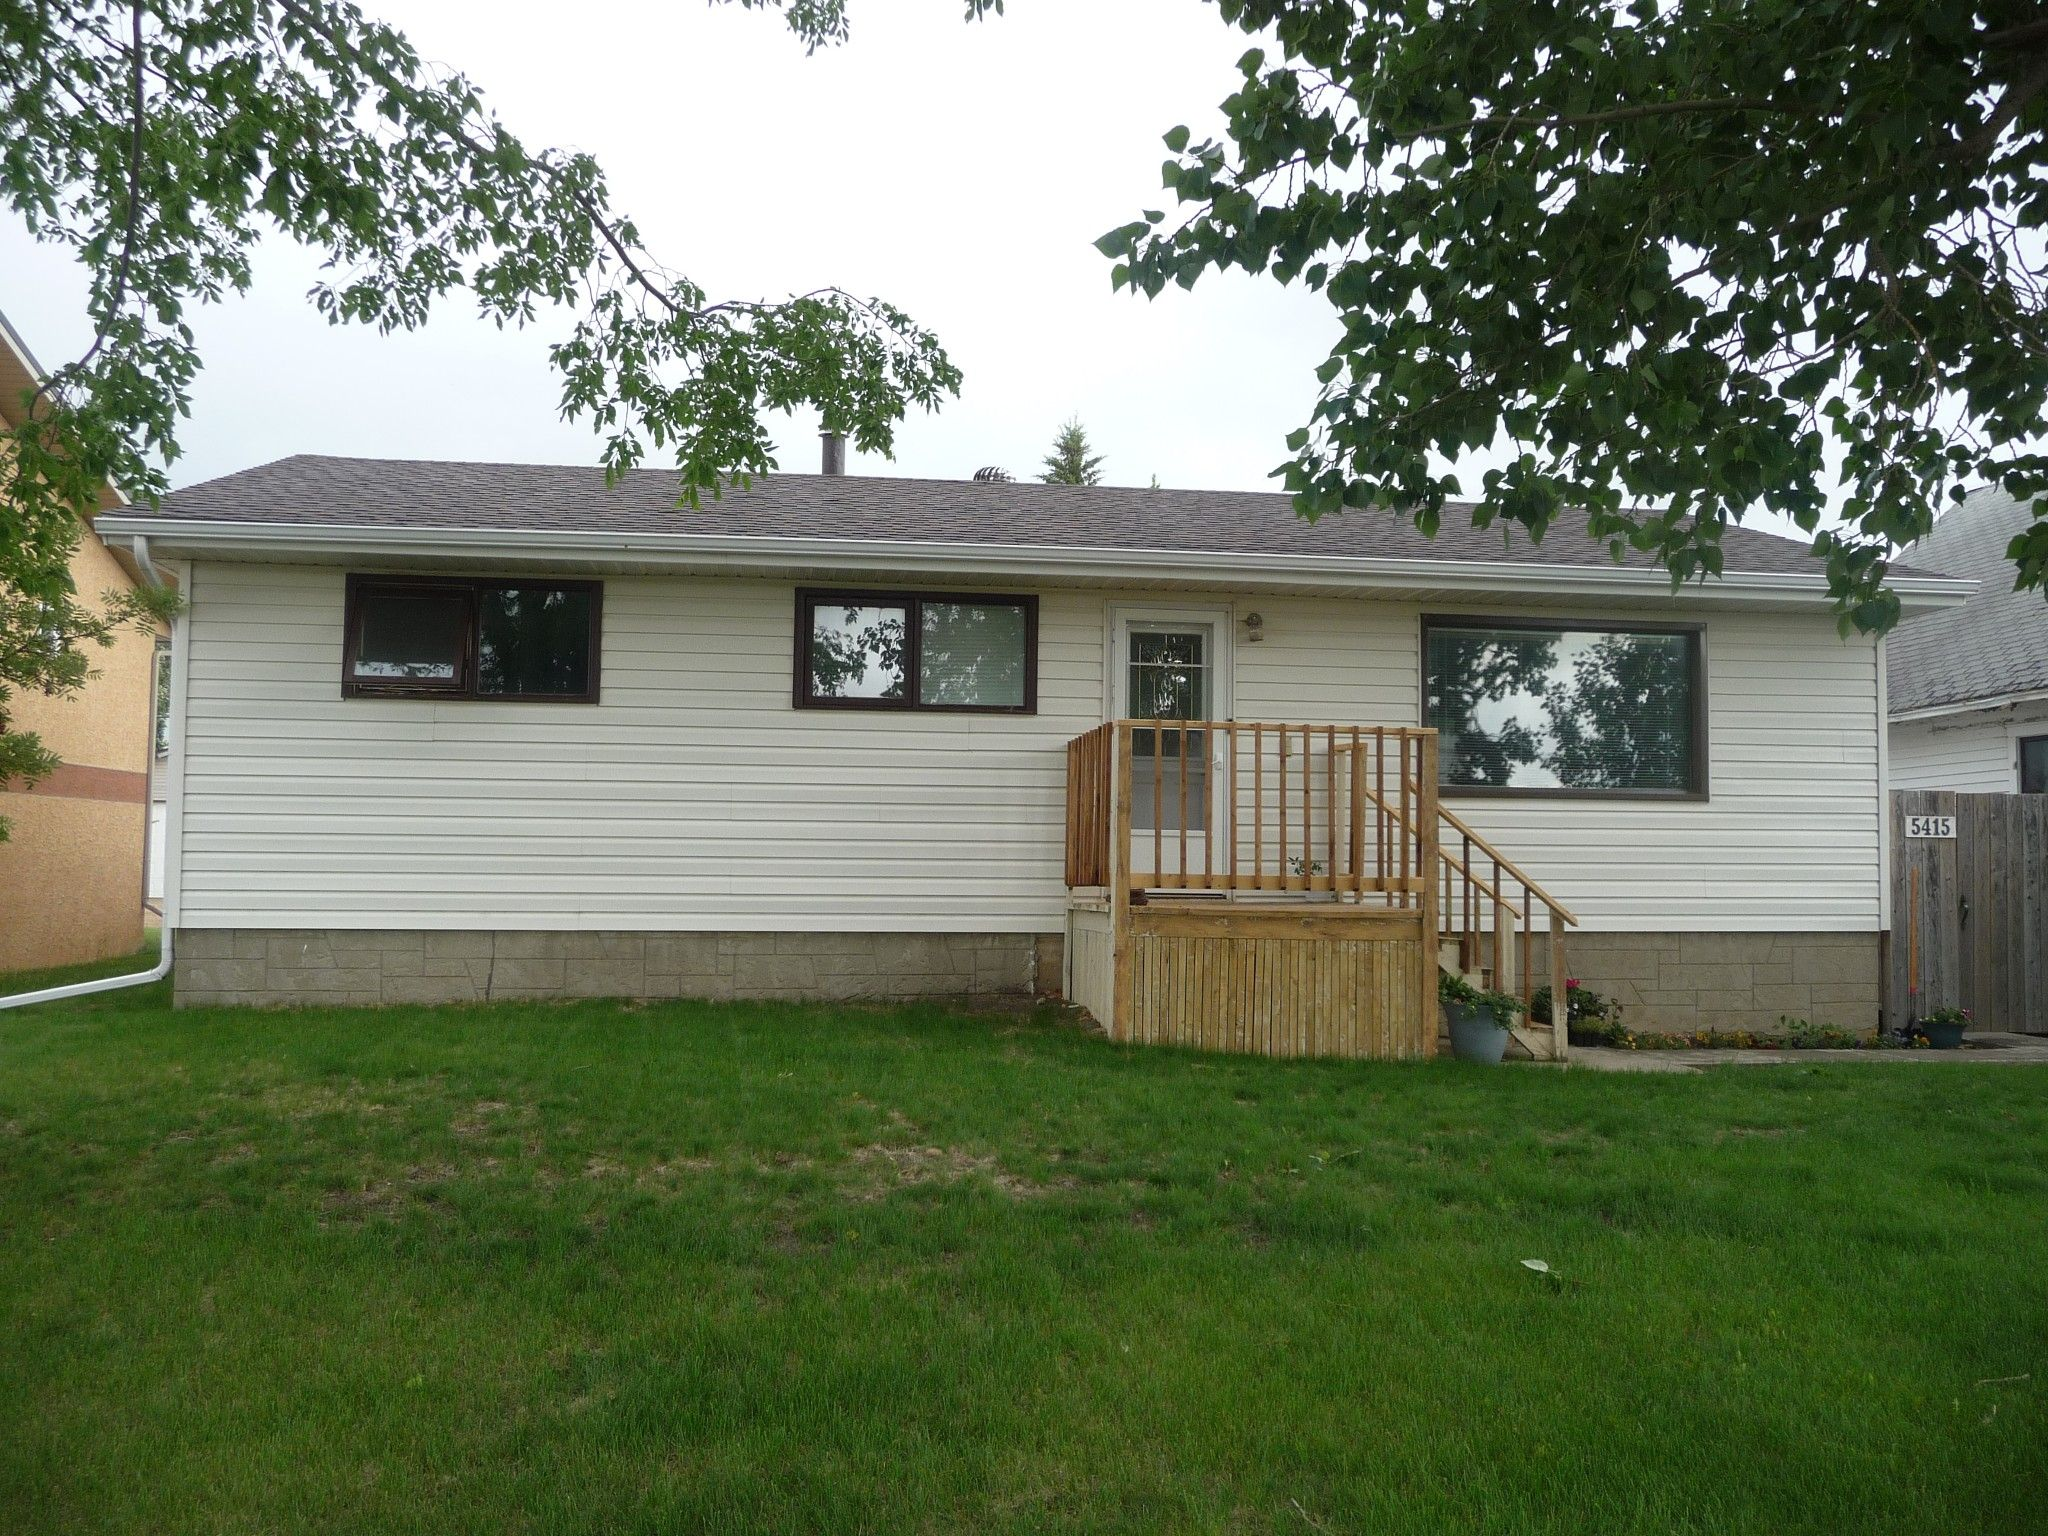 Main Photo: 5415 in Viking: House for sale